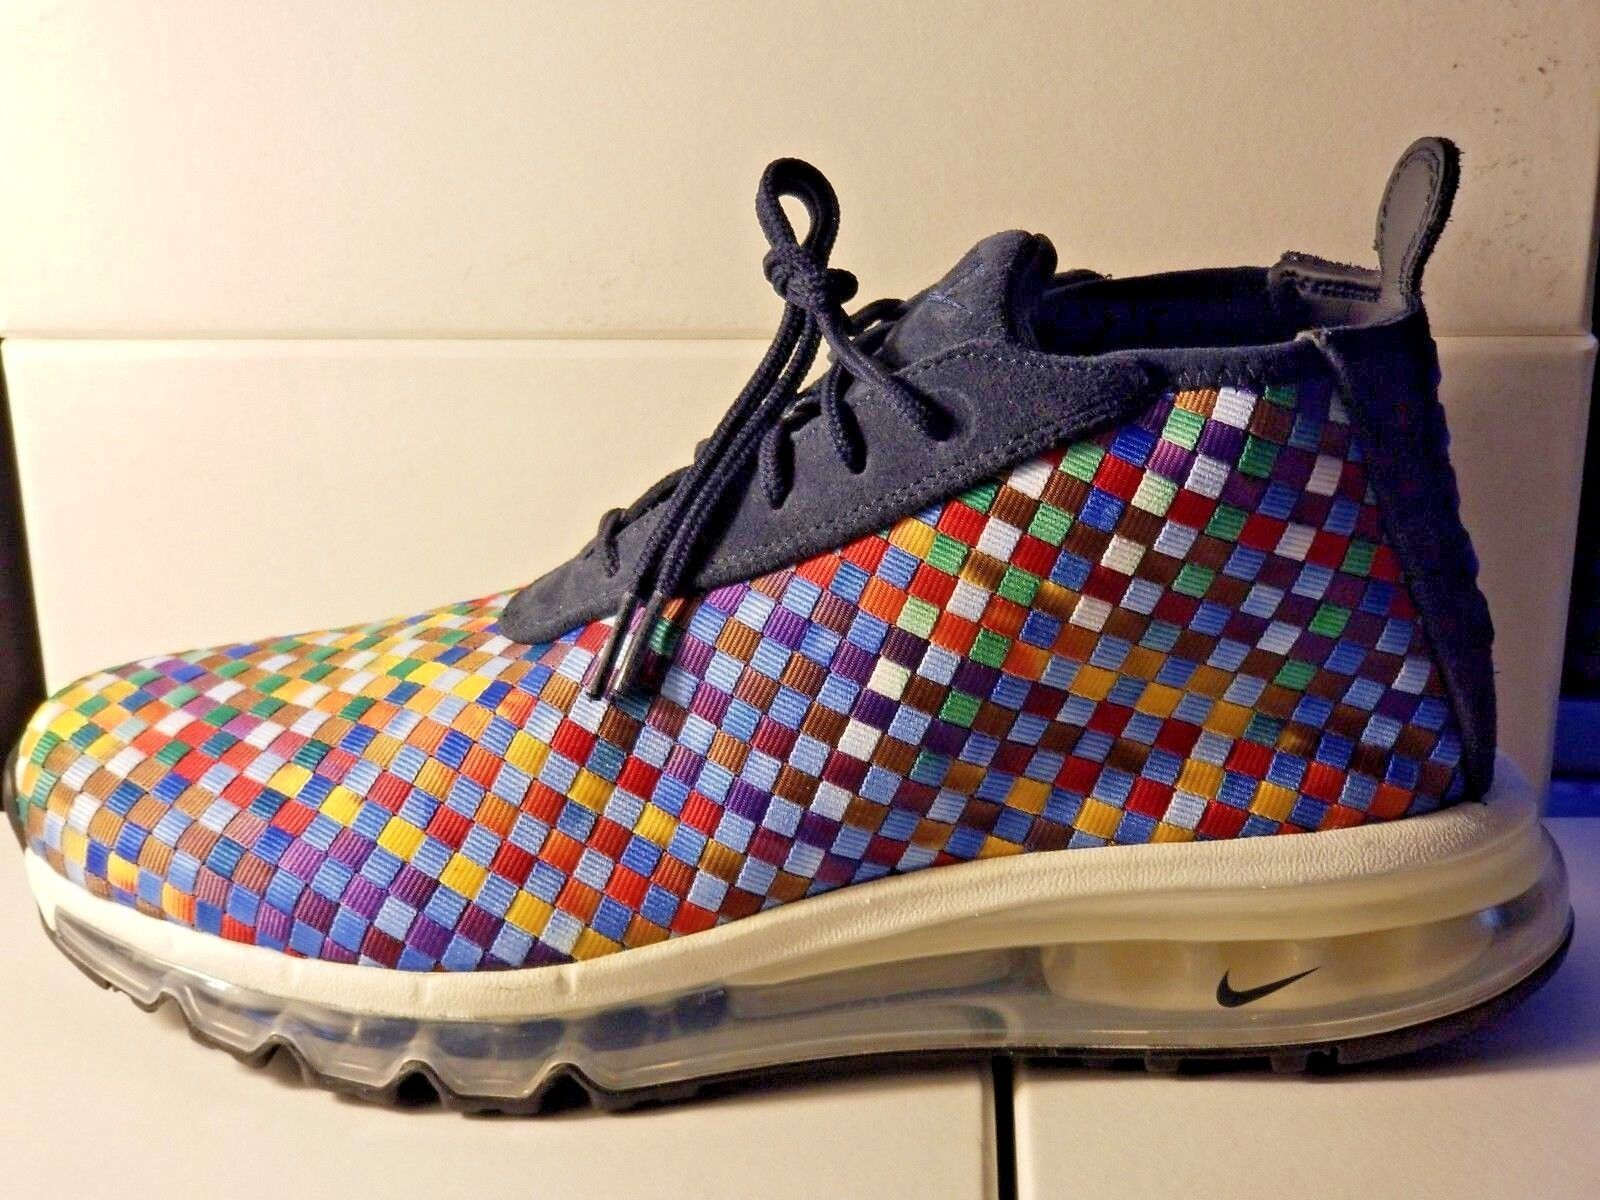 199 Nike Air Max (AH8139400) Woven Boot SE Multicolor Rainbow Mens Size 9.5